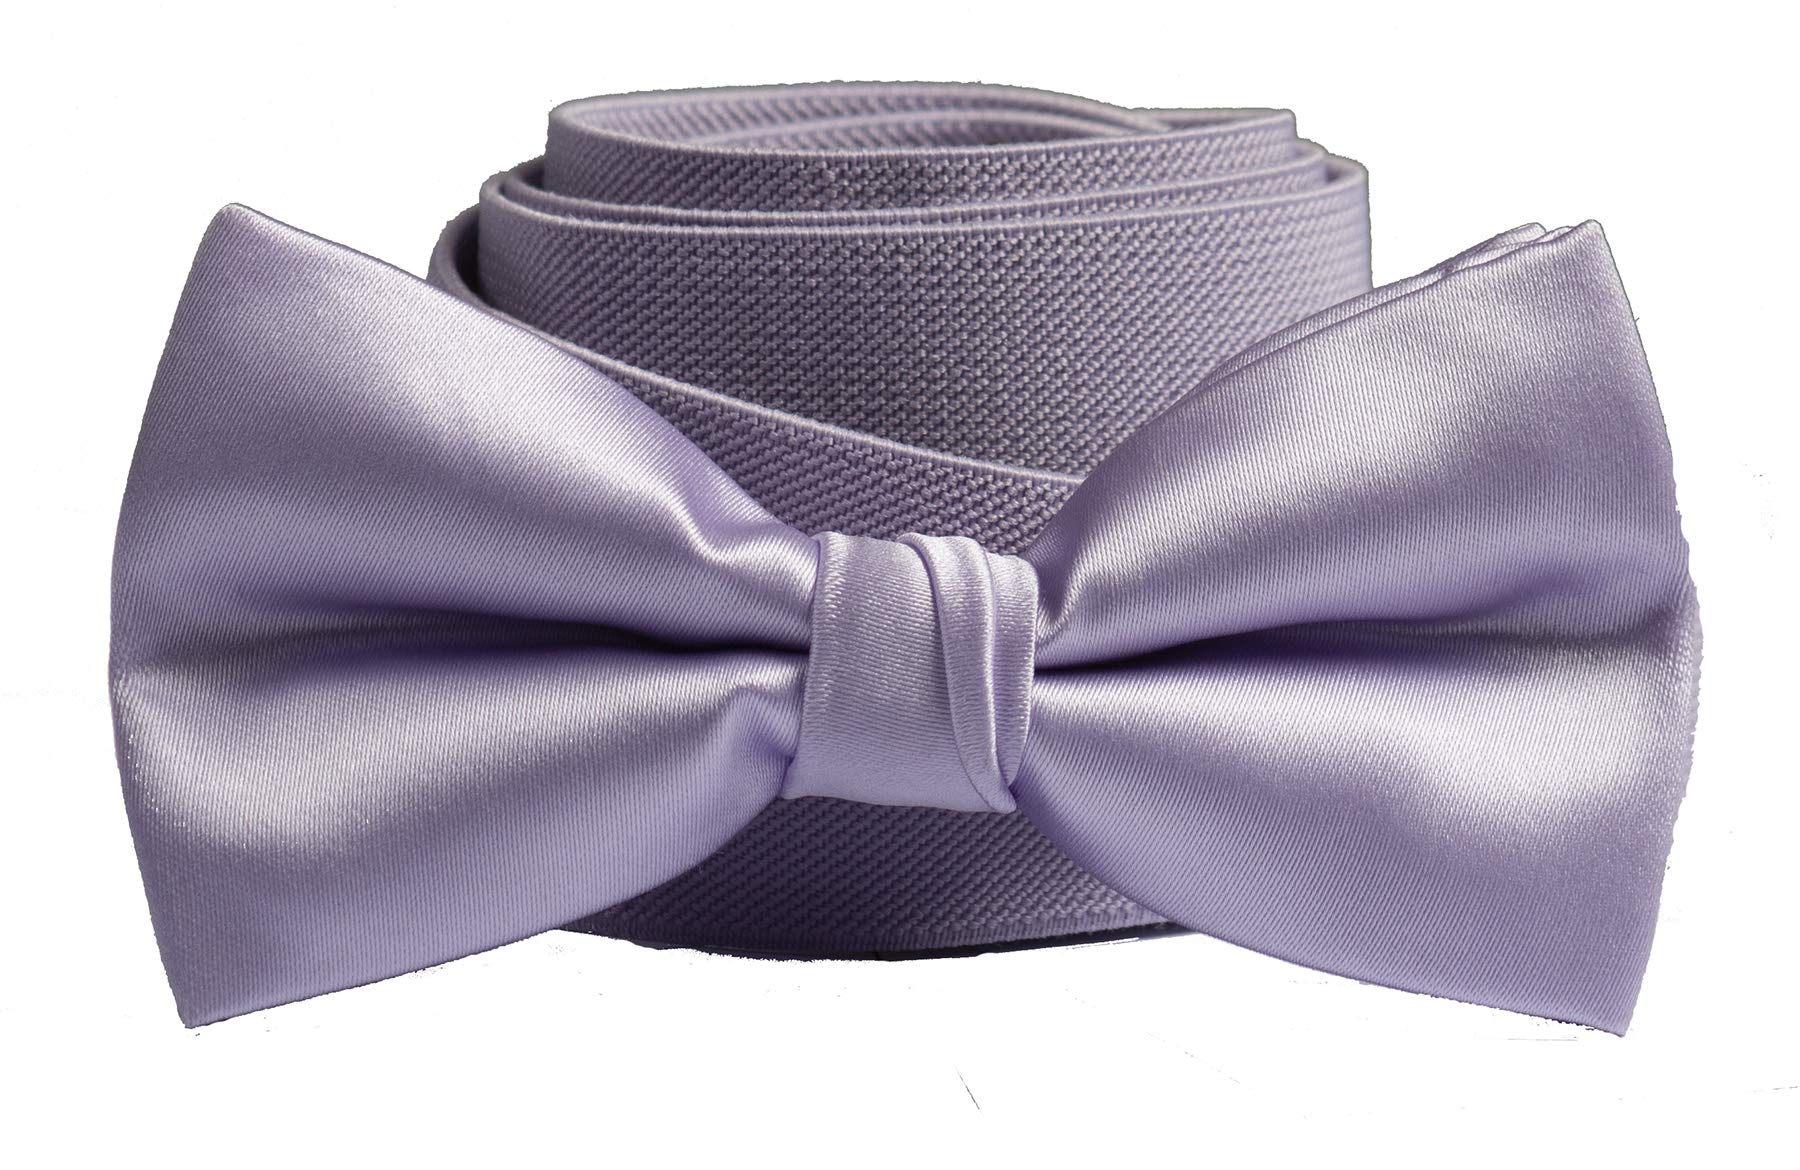 Tuxgear Boys Matching Adjustable Suspender and Bow Tie, Lavender, Youths 40'' (Lavender, Youths 40'')